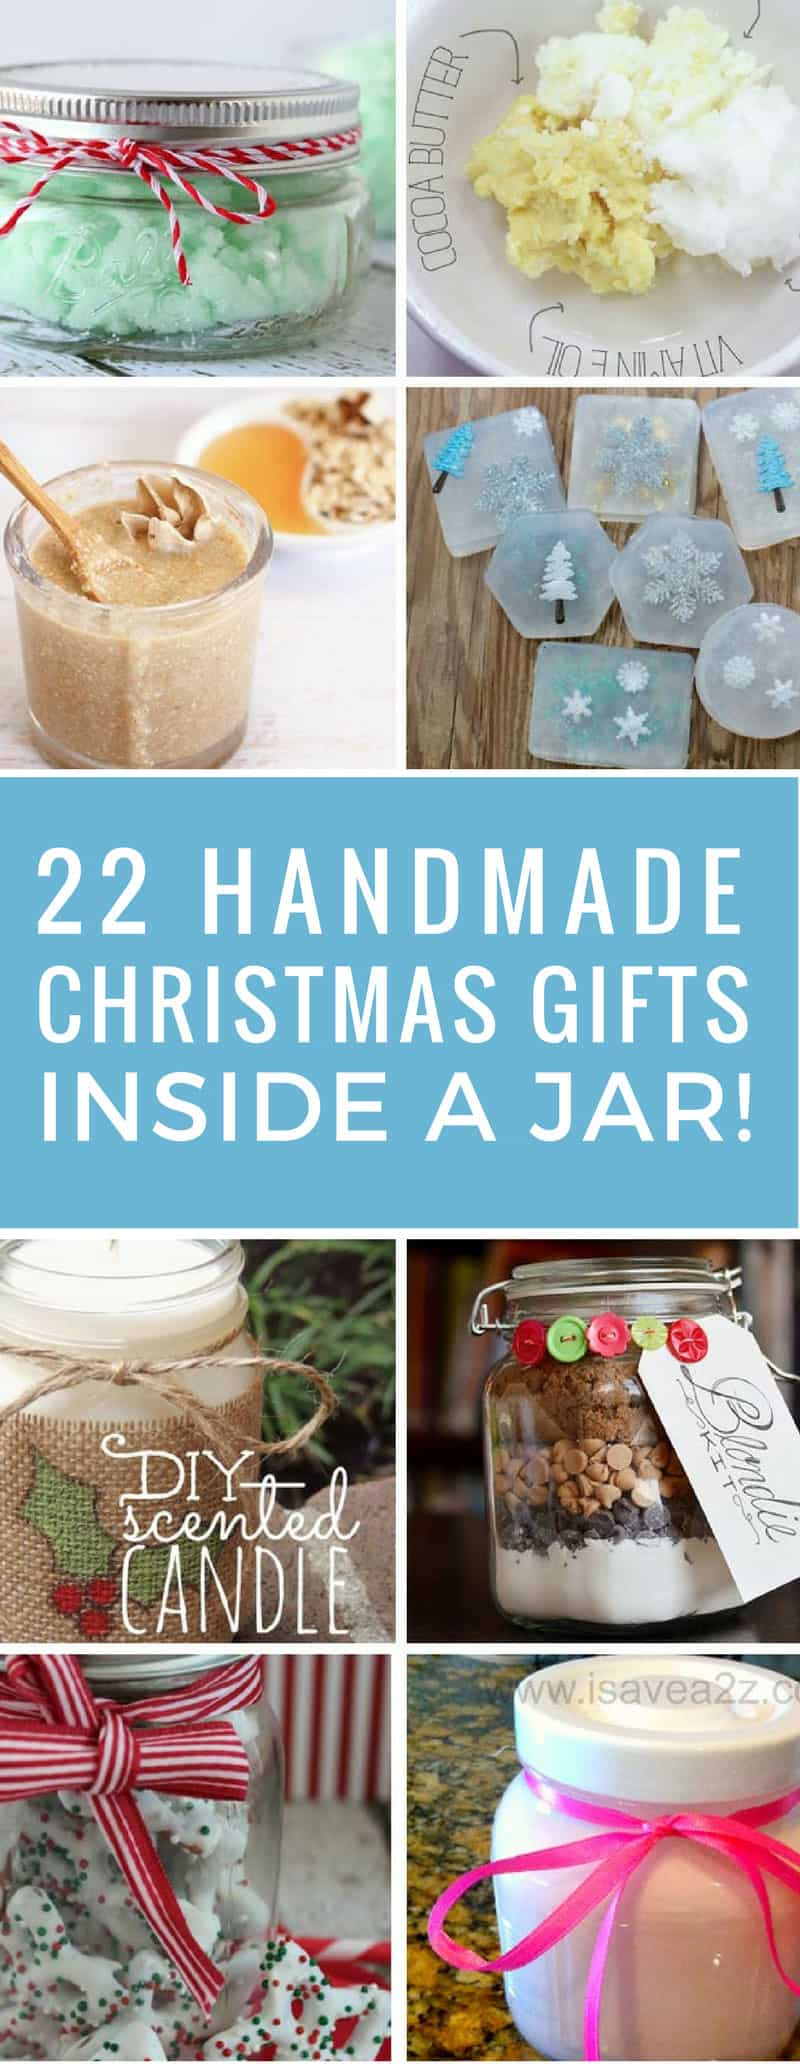 I needed some frugal gift ideas since we're on a tight budget this Christmas and these gifts in a jar were perfect! They're unique and thoughtful so no one will think about how much they cost!